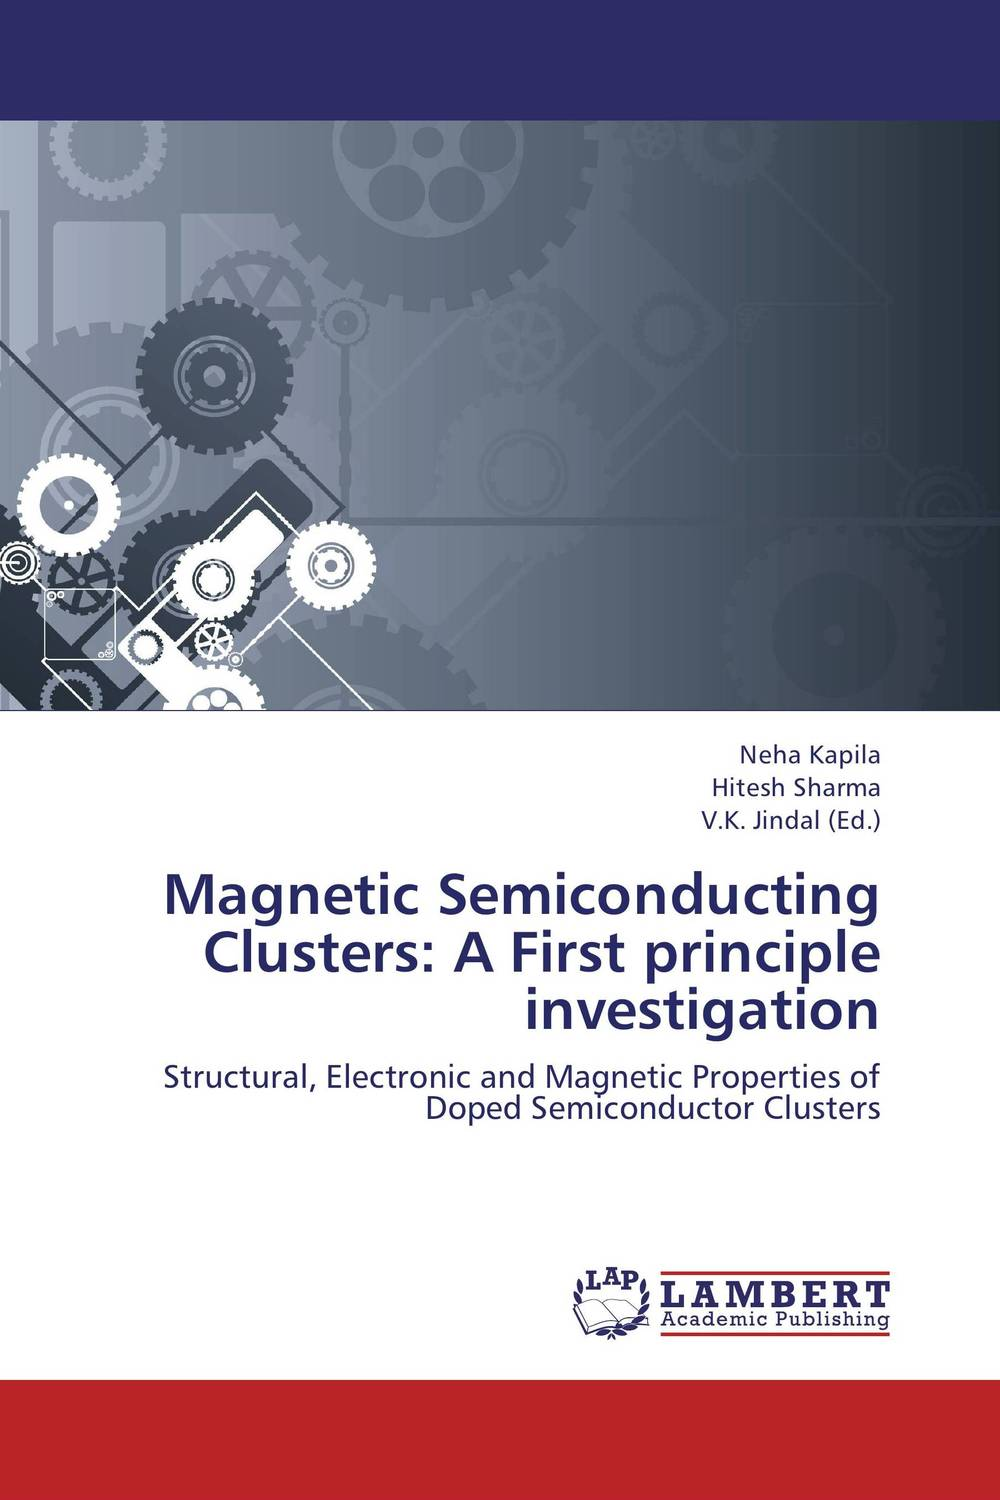 Magnetic Semiconducting Clusters: A First principle investigation